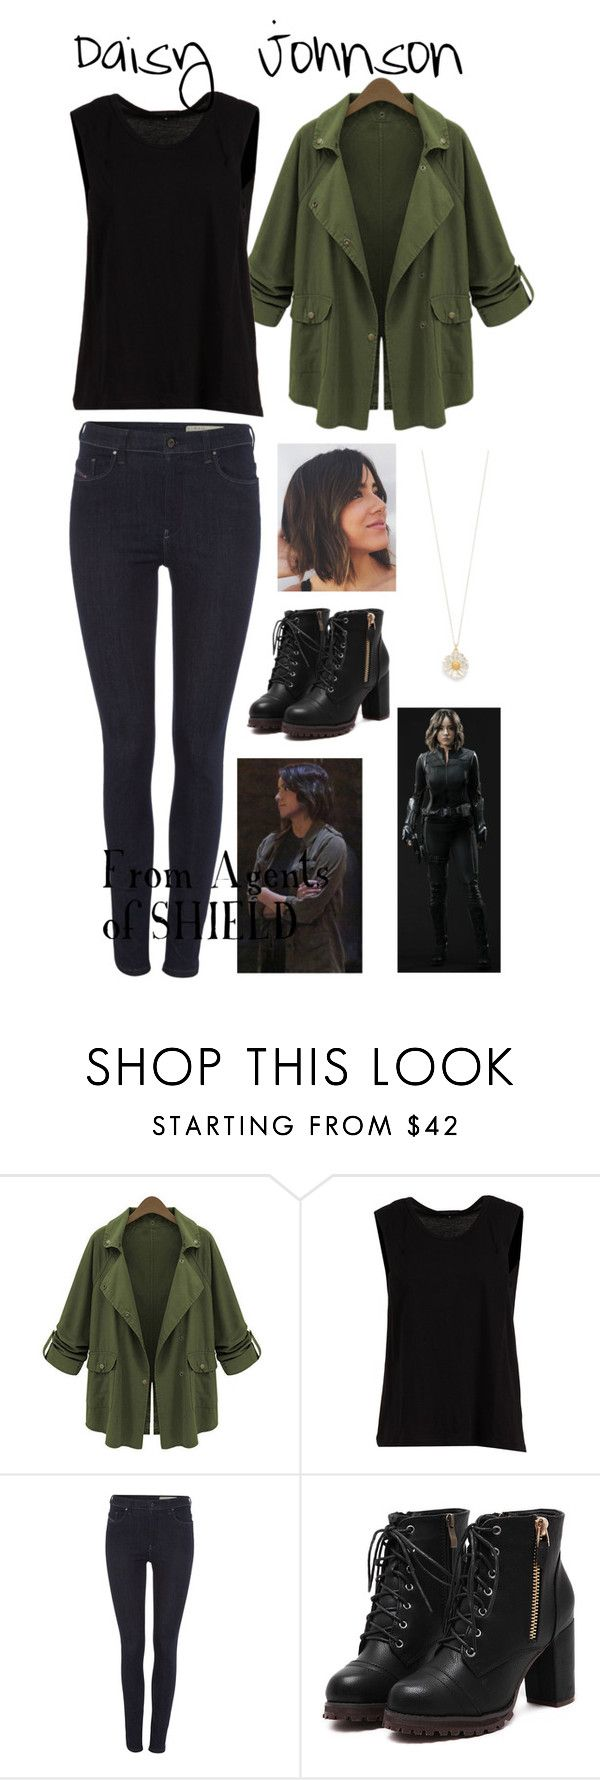 Agents of SHIELD: Daisy Johnson by stellabear0627 on Polyvore featuring Ohne Titel, Chicnova Fashion, Diesel and Alex Monroe